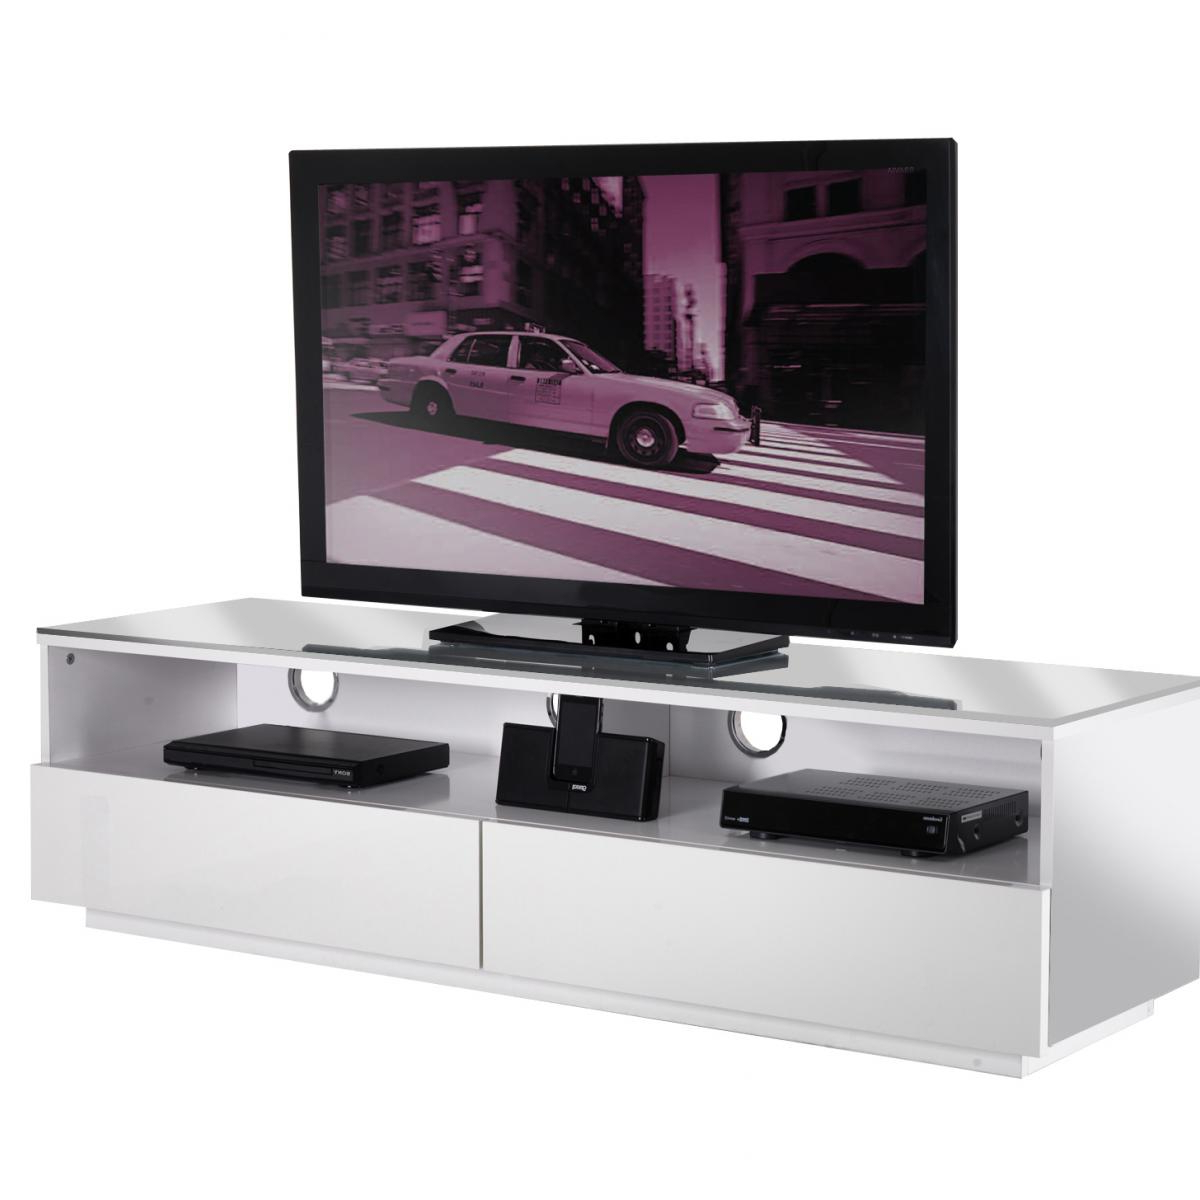 Most Recent 0413 Ukcf Milan White Gloss Corner Tv Stand 150Cm Pertaining To White Gloss Corner Tv Stands (View 8 of 20)